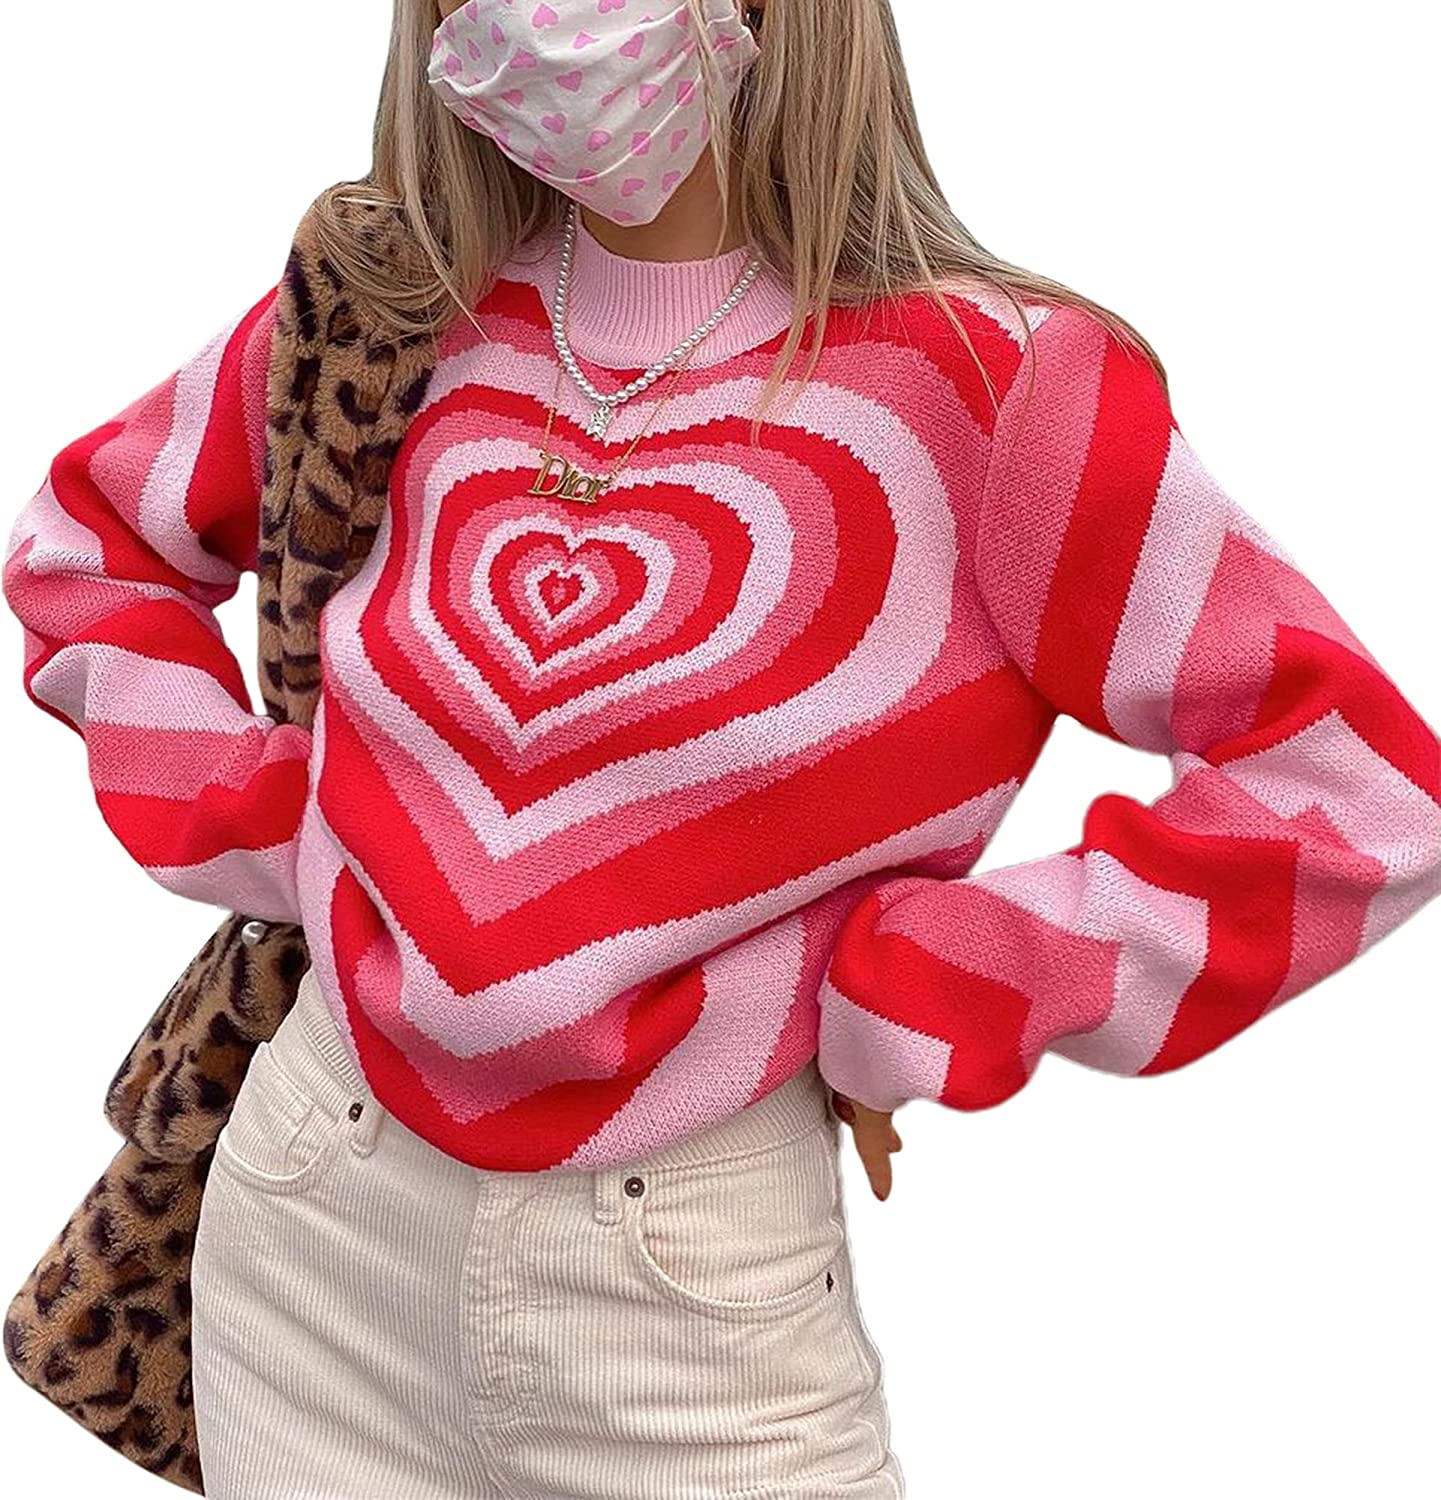 Women Girl Y2k Sweater Long Sleeve Graphic Check Knit Sweater Vintage Print Pullover Blouse 90s Street Wear